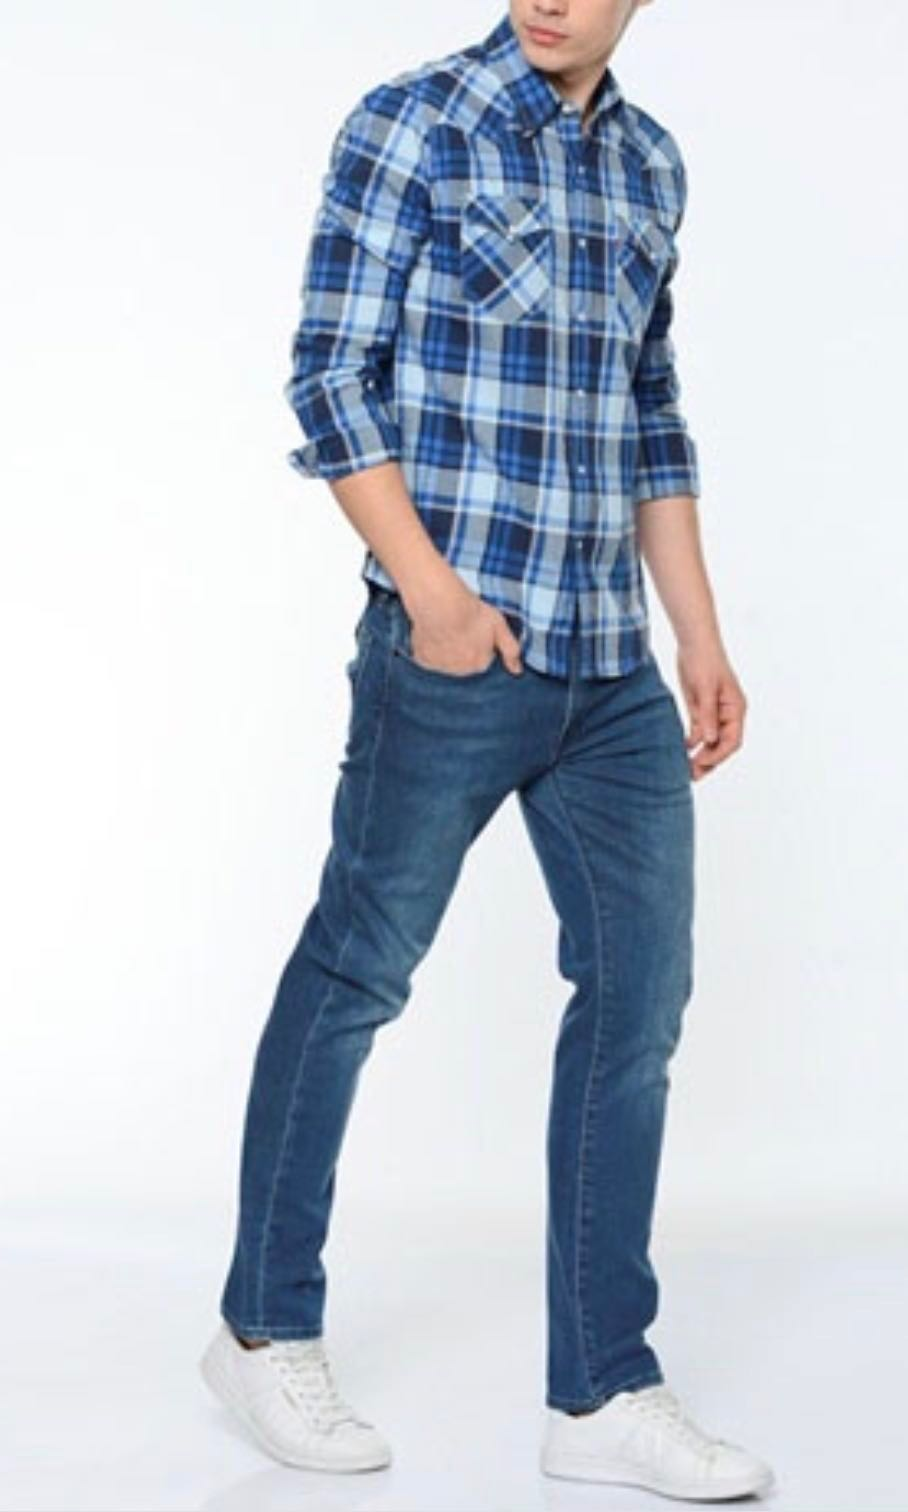 41f8e984b0a Levis 511 Slim Fit Men's Denim Jeans Size 31, Men's Fashion, Clothes ...